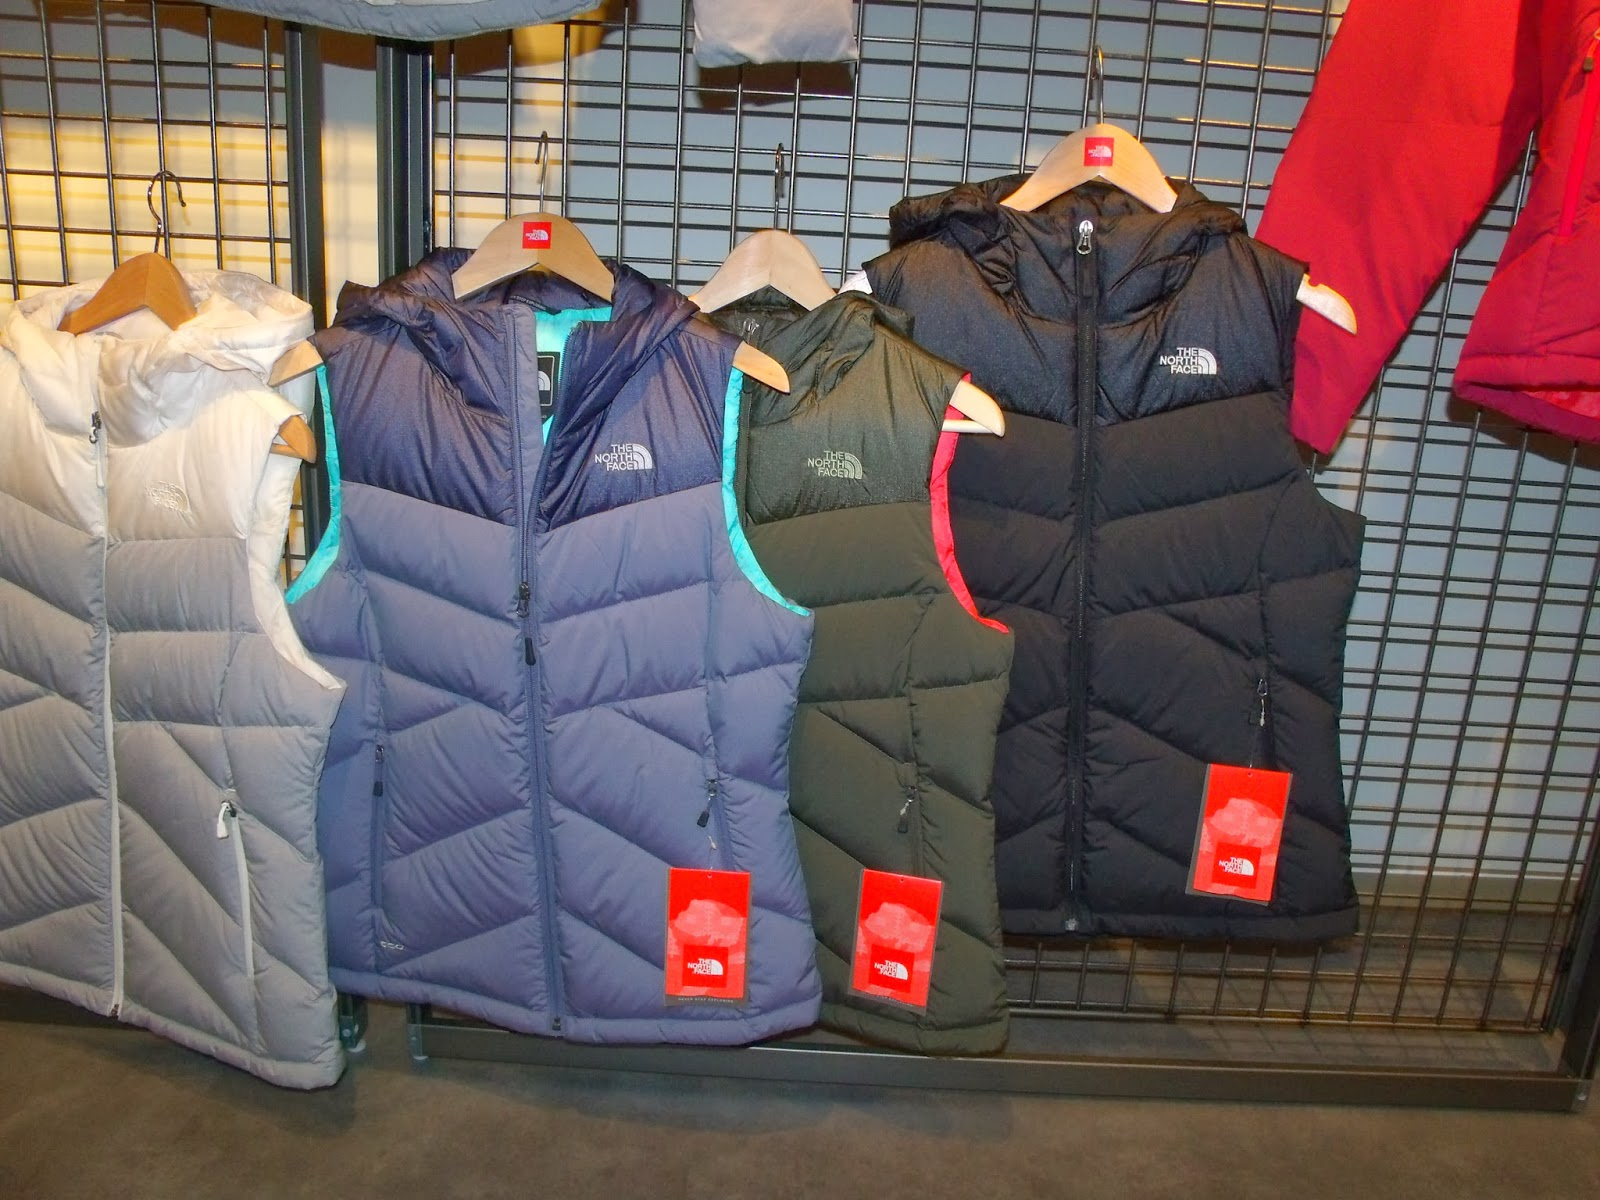 449e7efda Outdoorkit: AW14 Sneak Preview #2: The North Face Women's Kailash ...